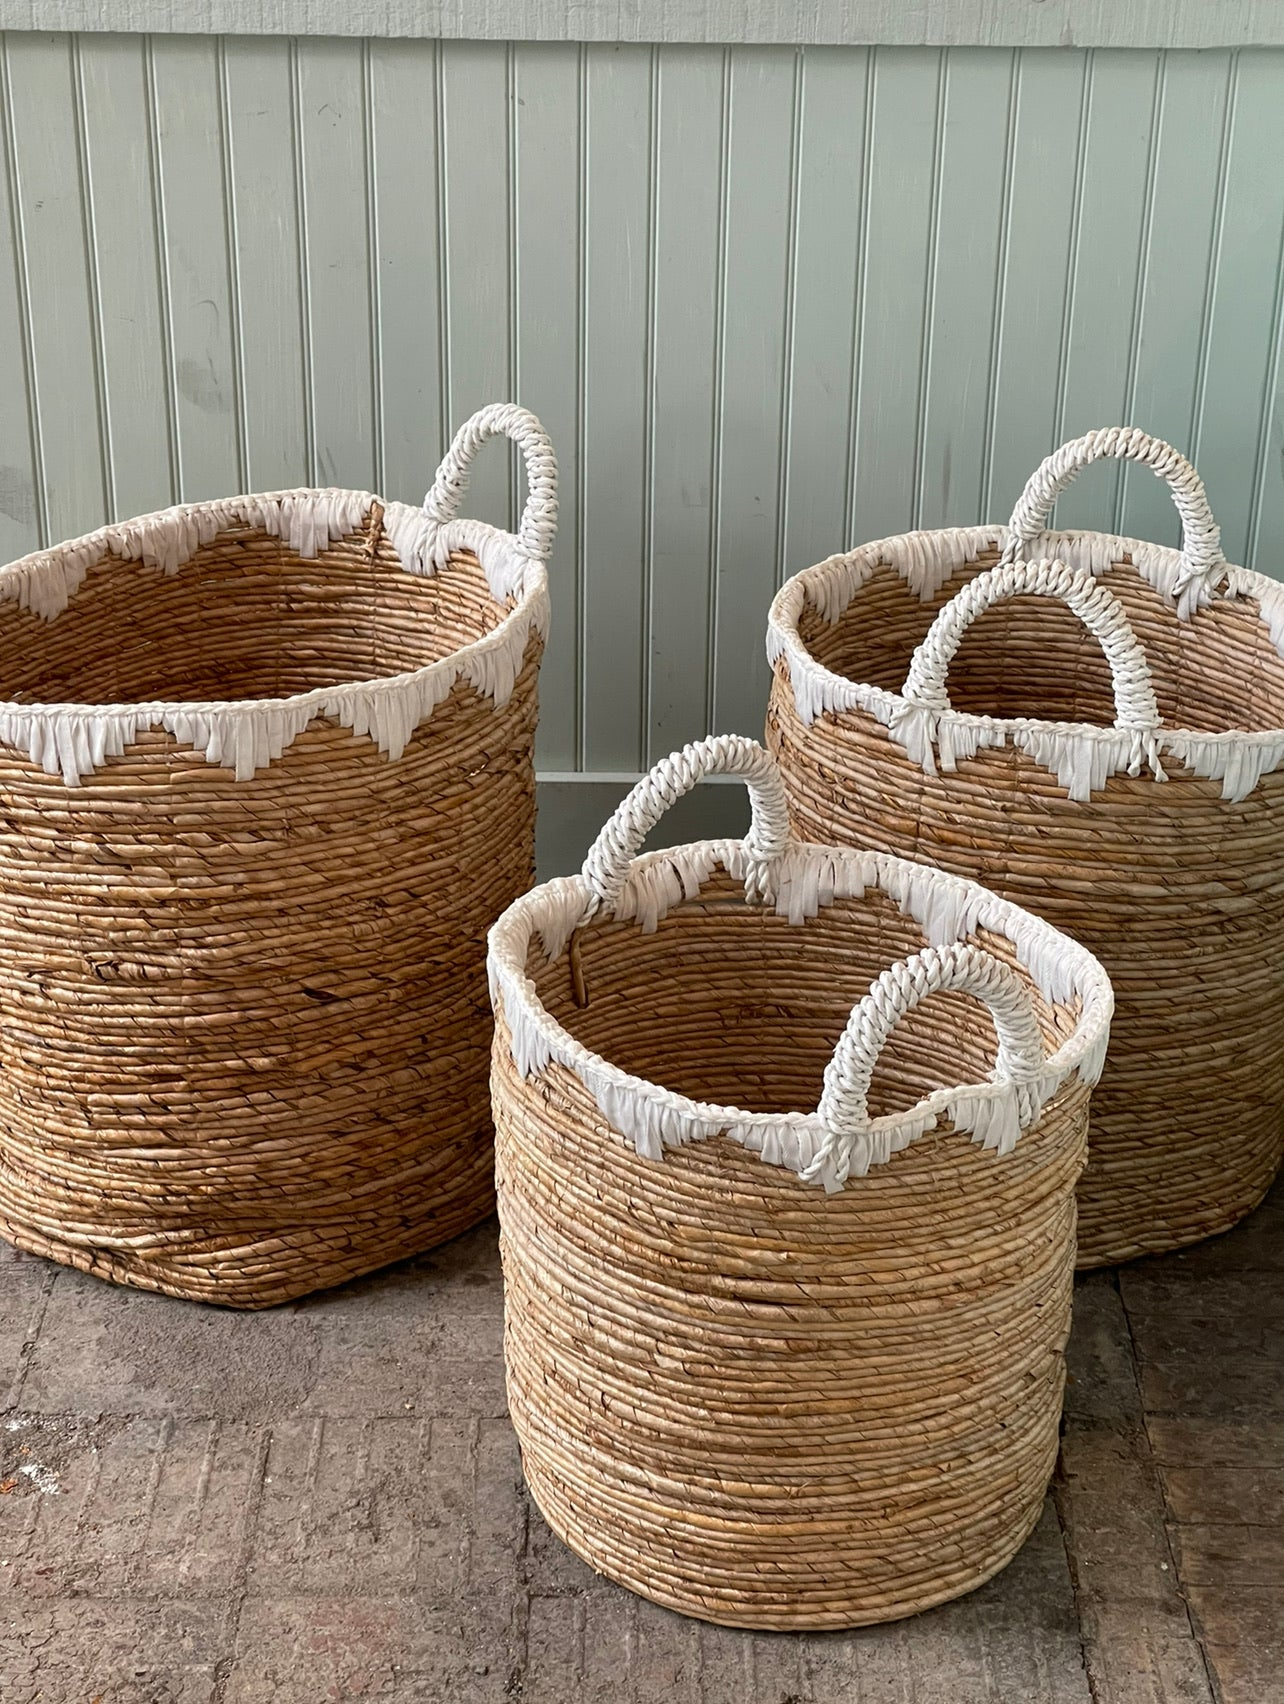 Banana Leaves Basket natural and white edges with Handles